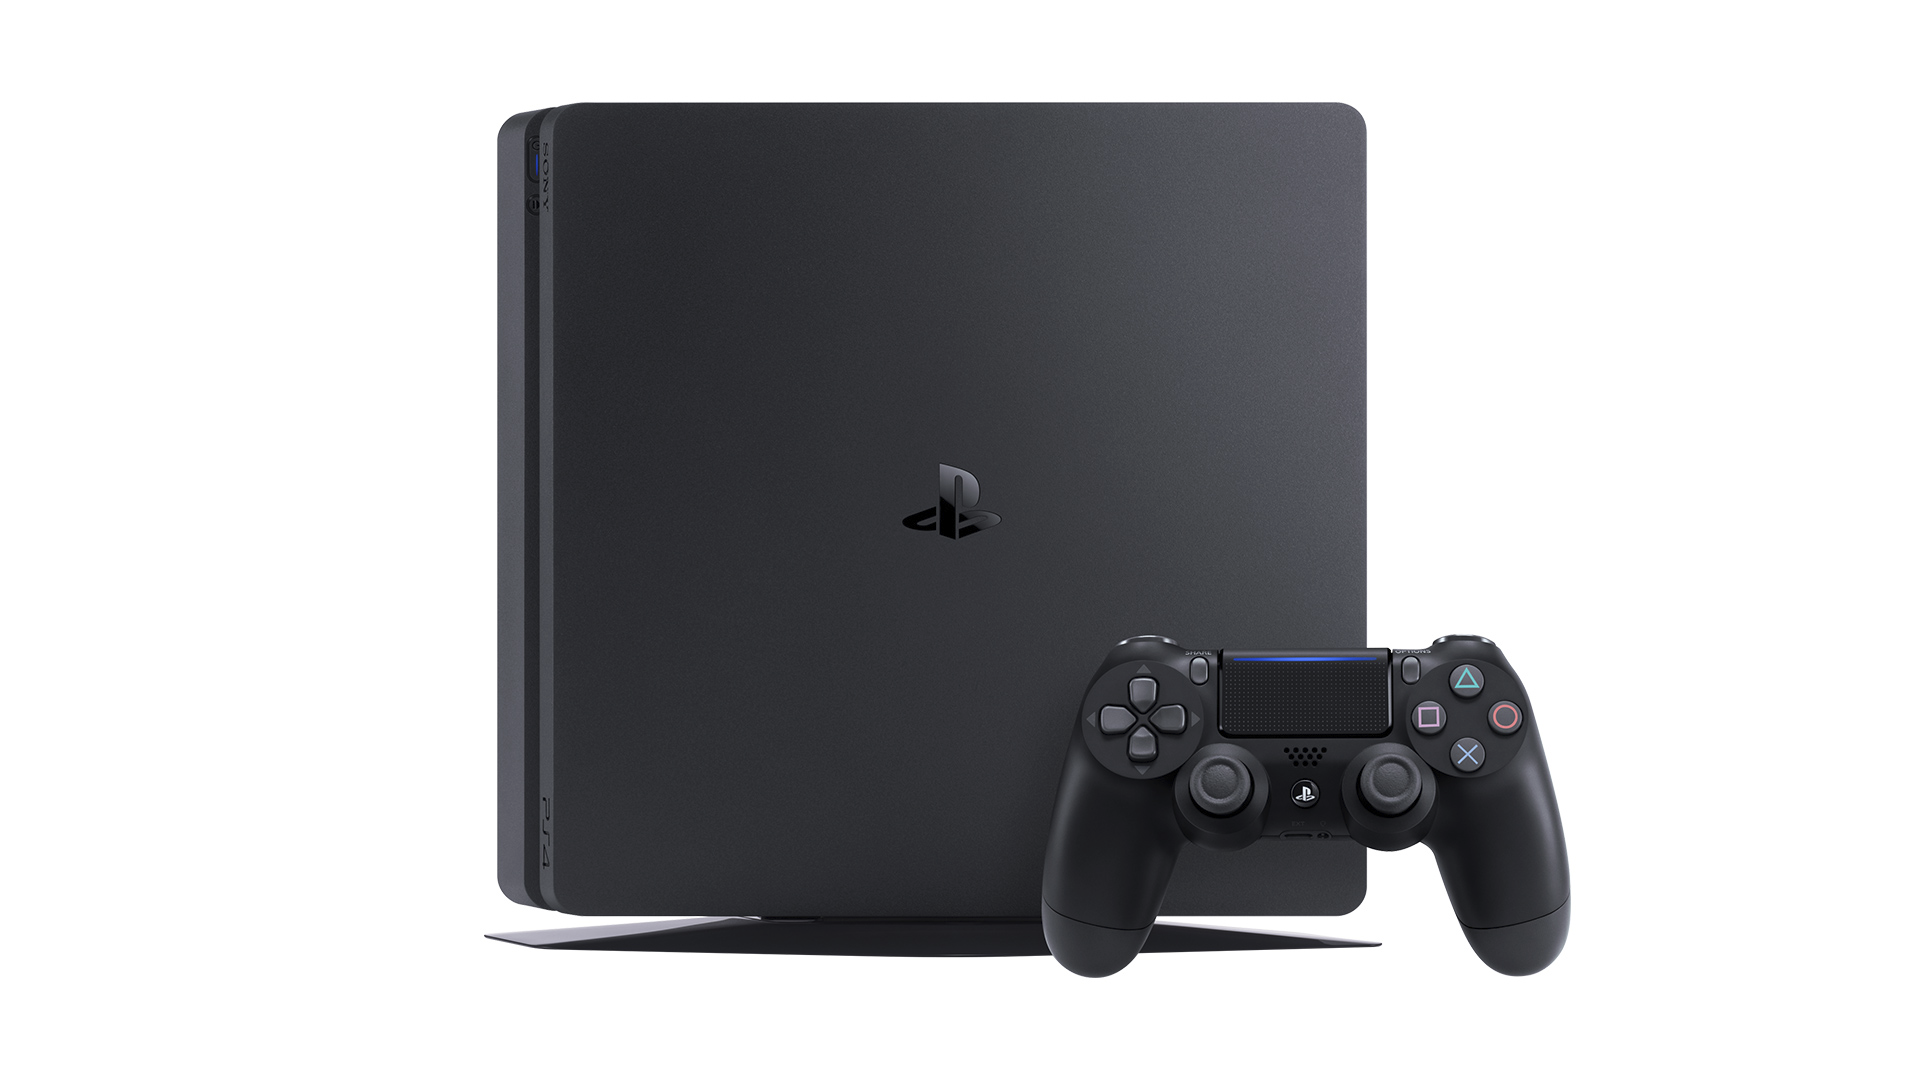 PlayStation 4 - Horizontal Product Shot